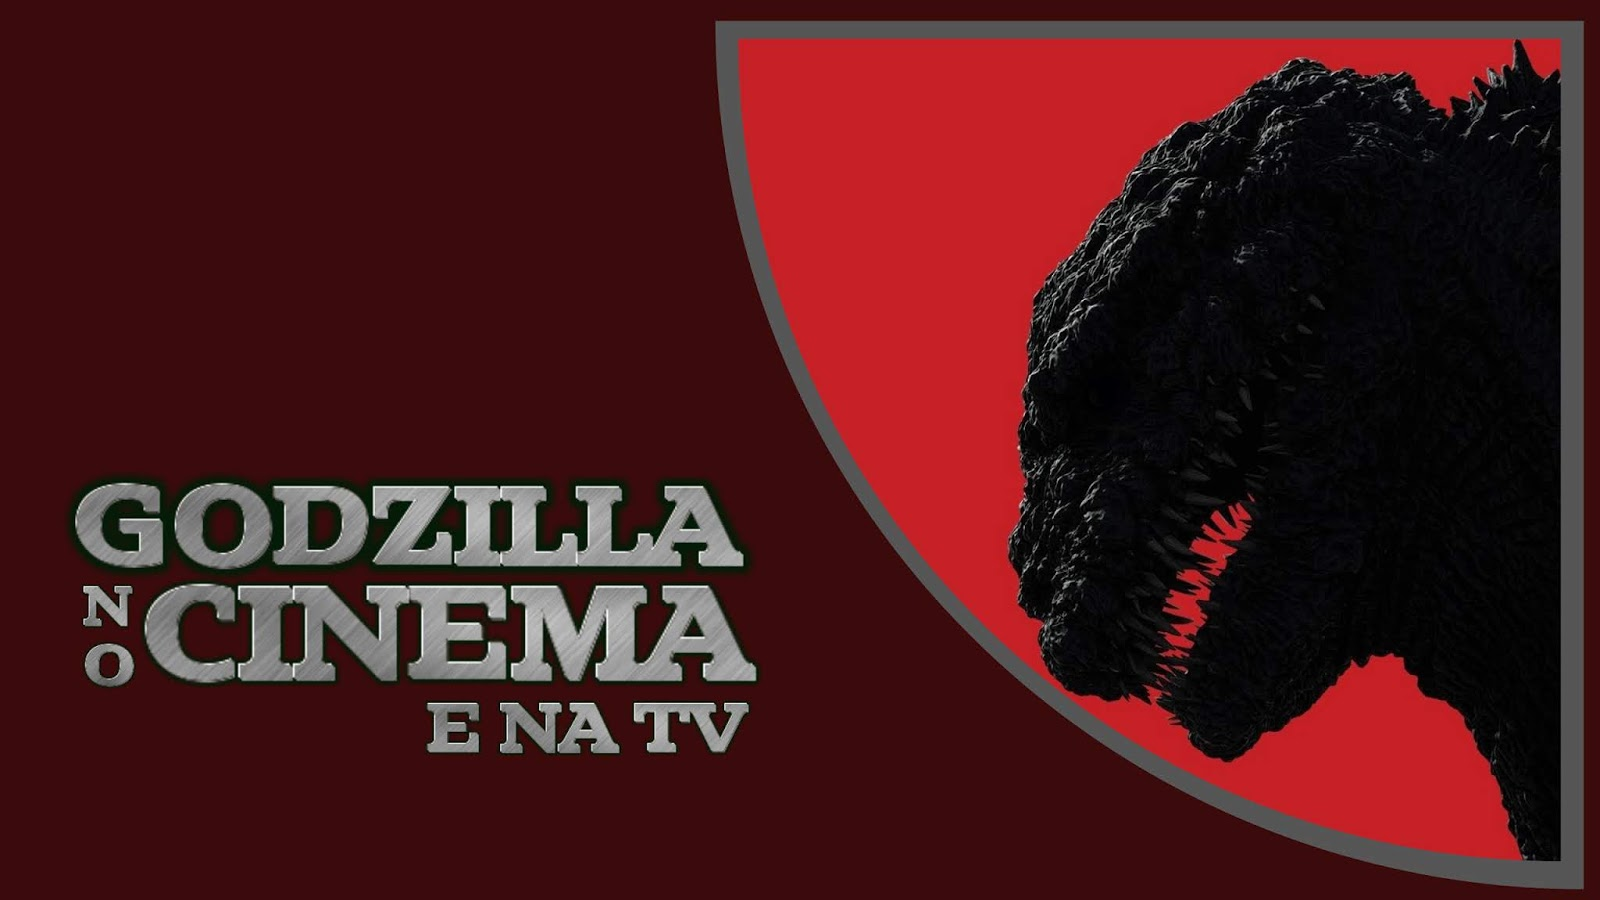 godzilla-no-cinema-tv